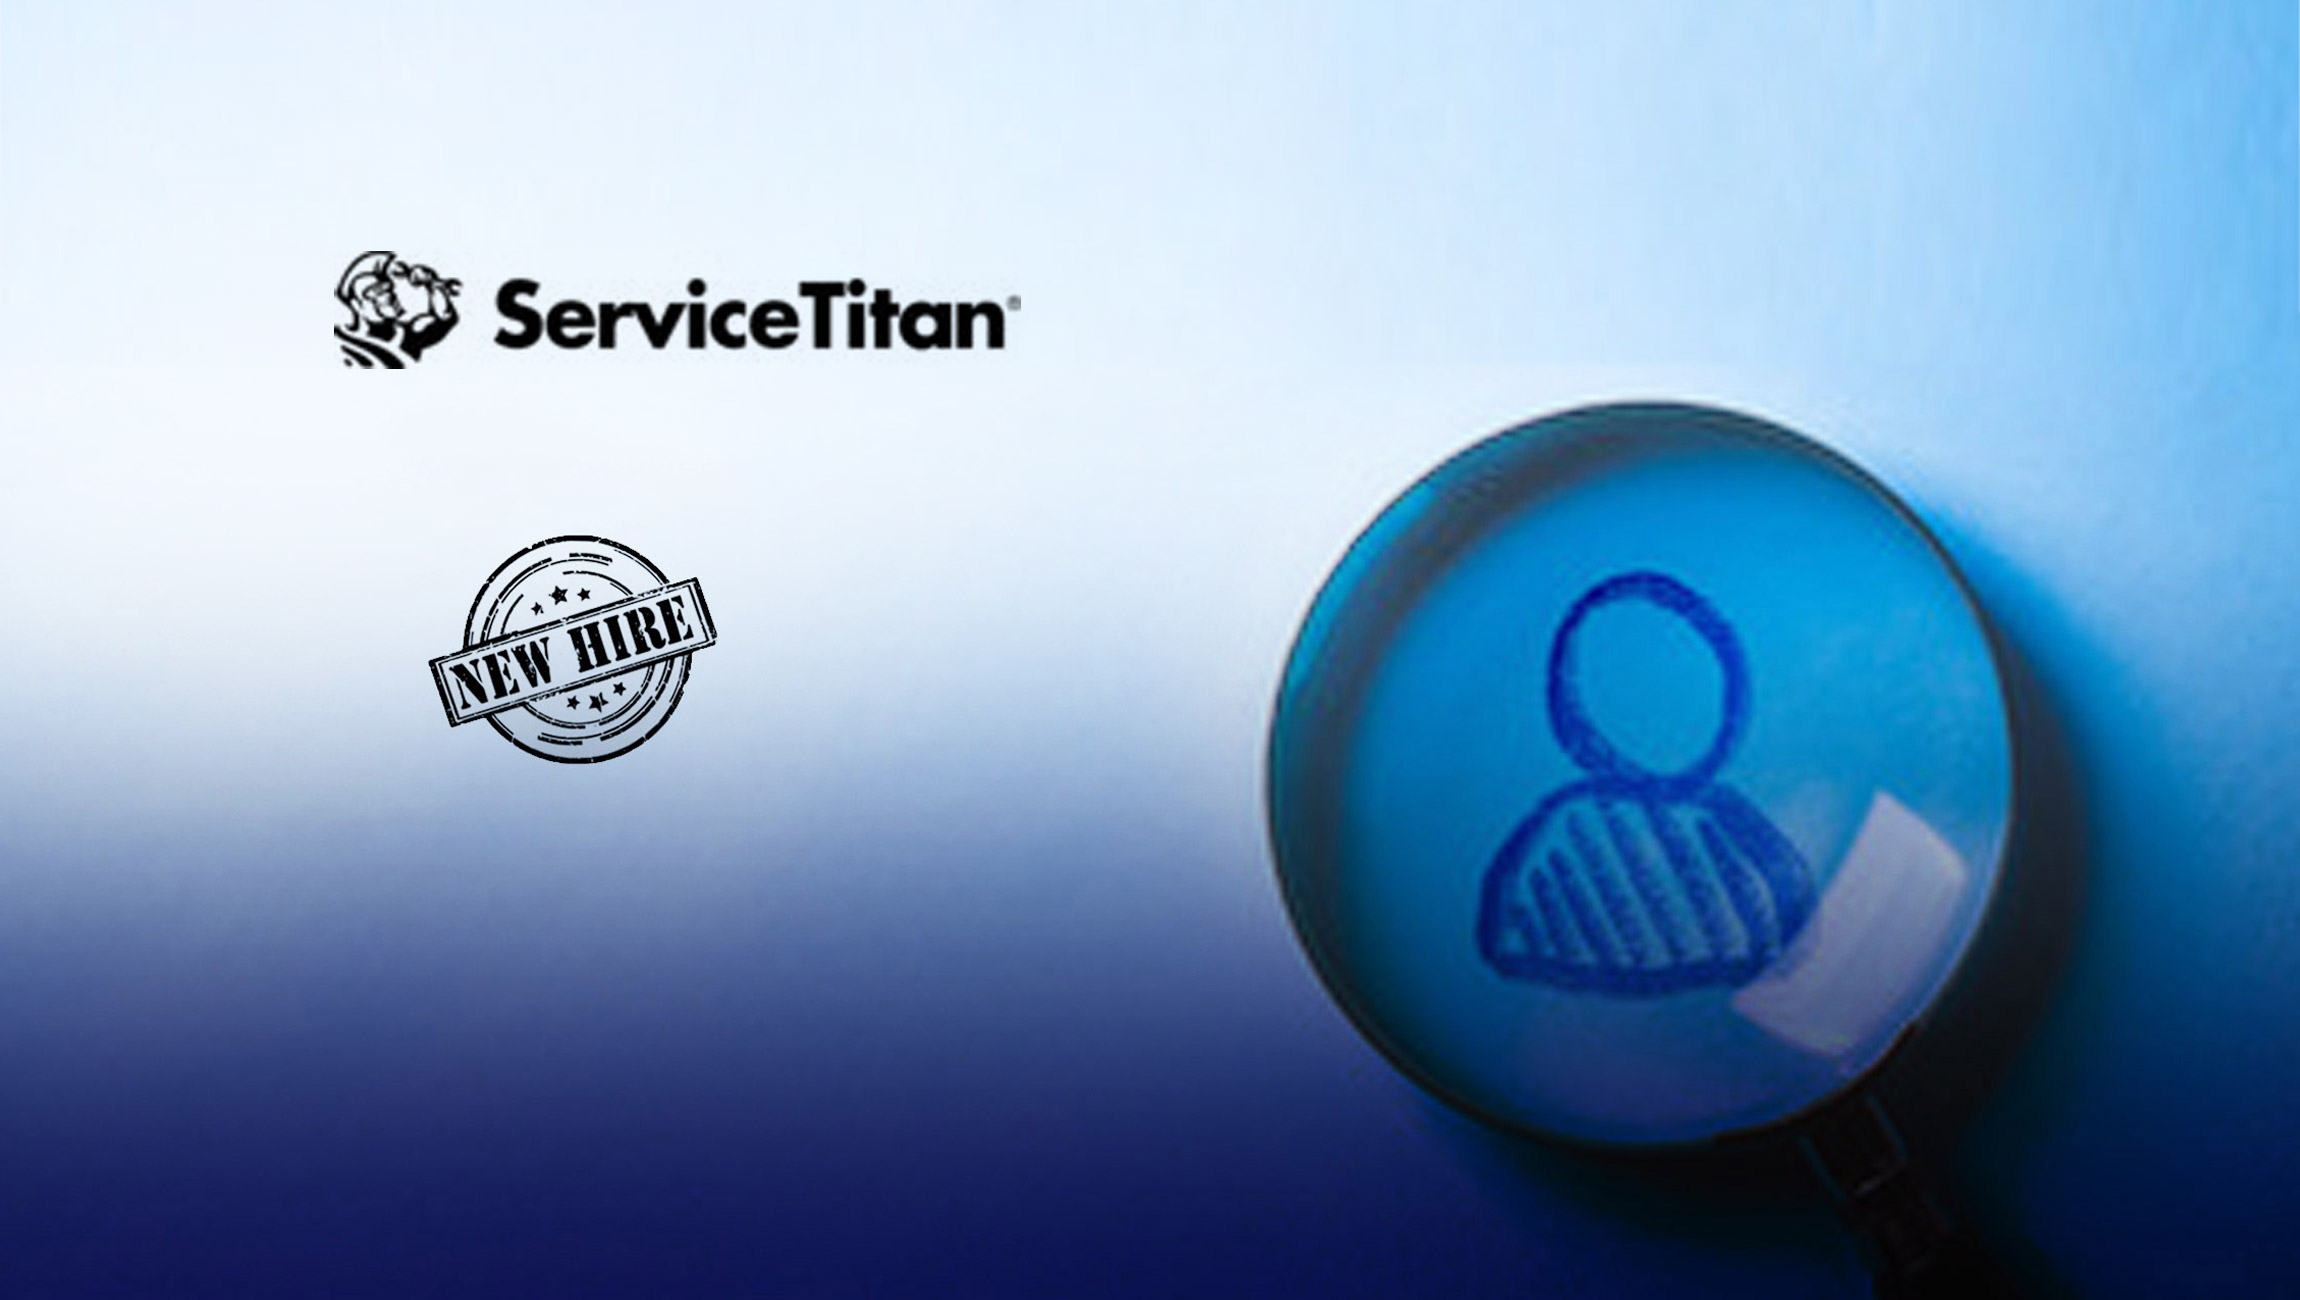 ServiceTitan-Appoints-Technology-Leaders-Diya-Jolly-and-Sameer-Dholakia-to-its-Board-of-Directors